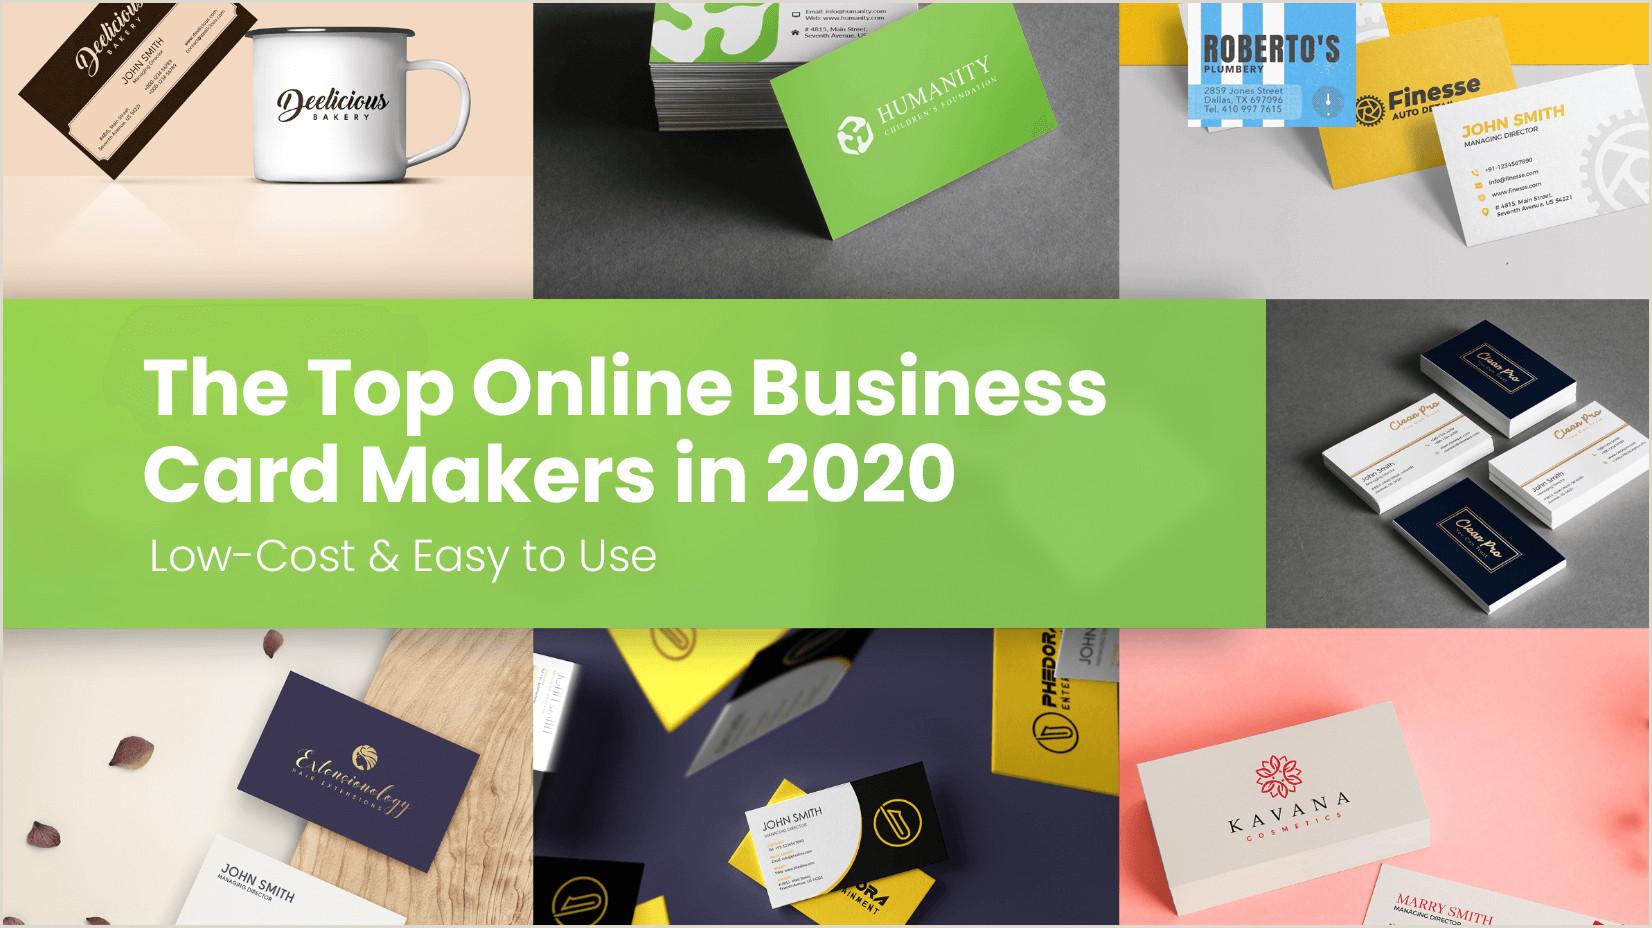 Best Business Cards Create Online The Top Line Business Card Makers In 2020 Low Cost & Easy